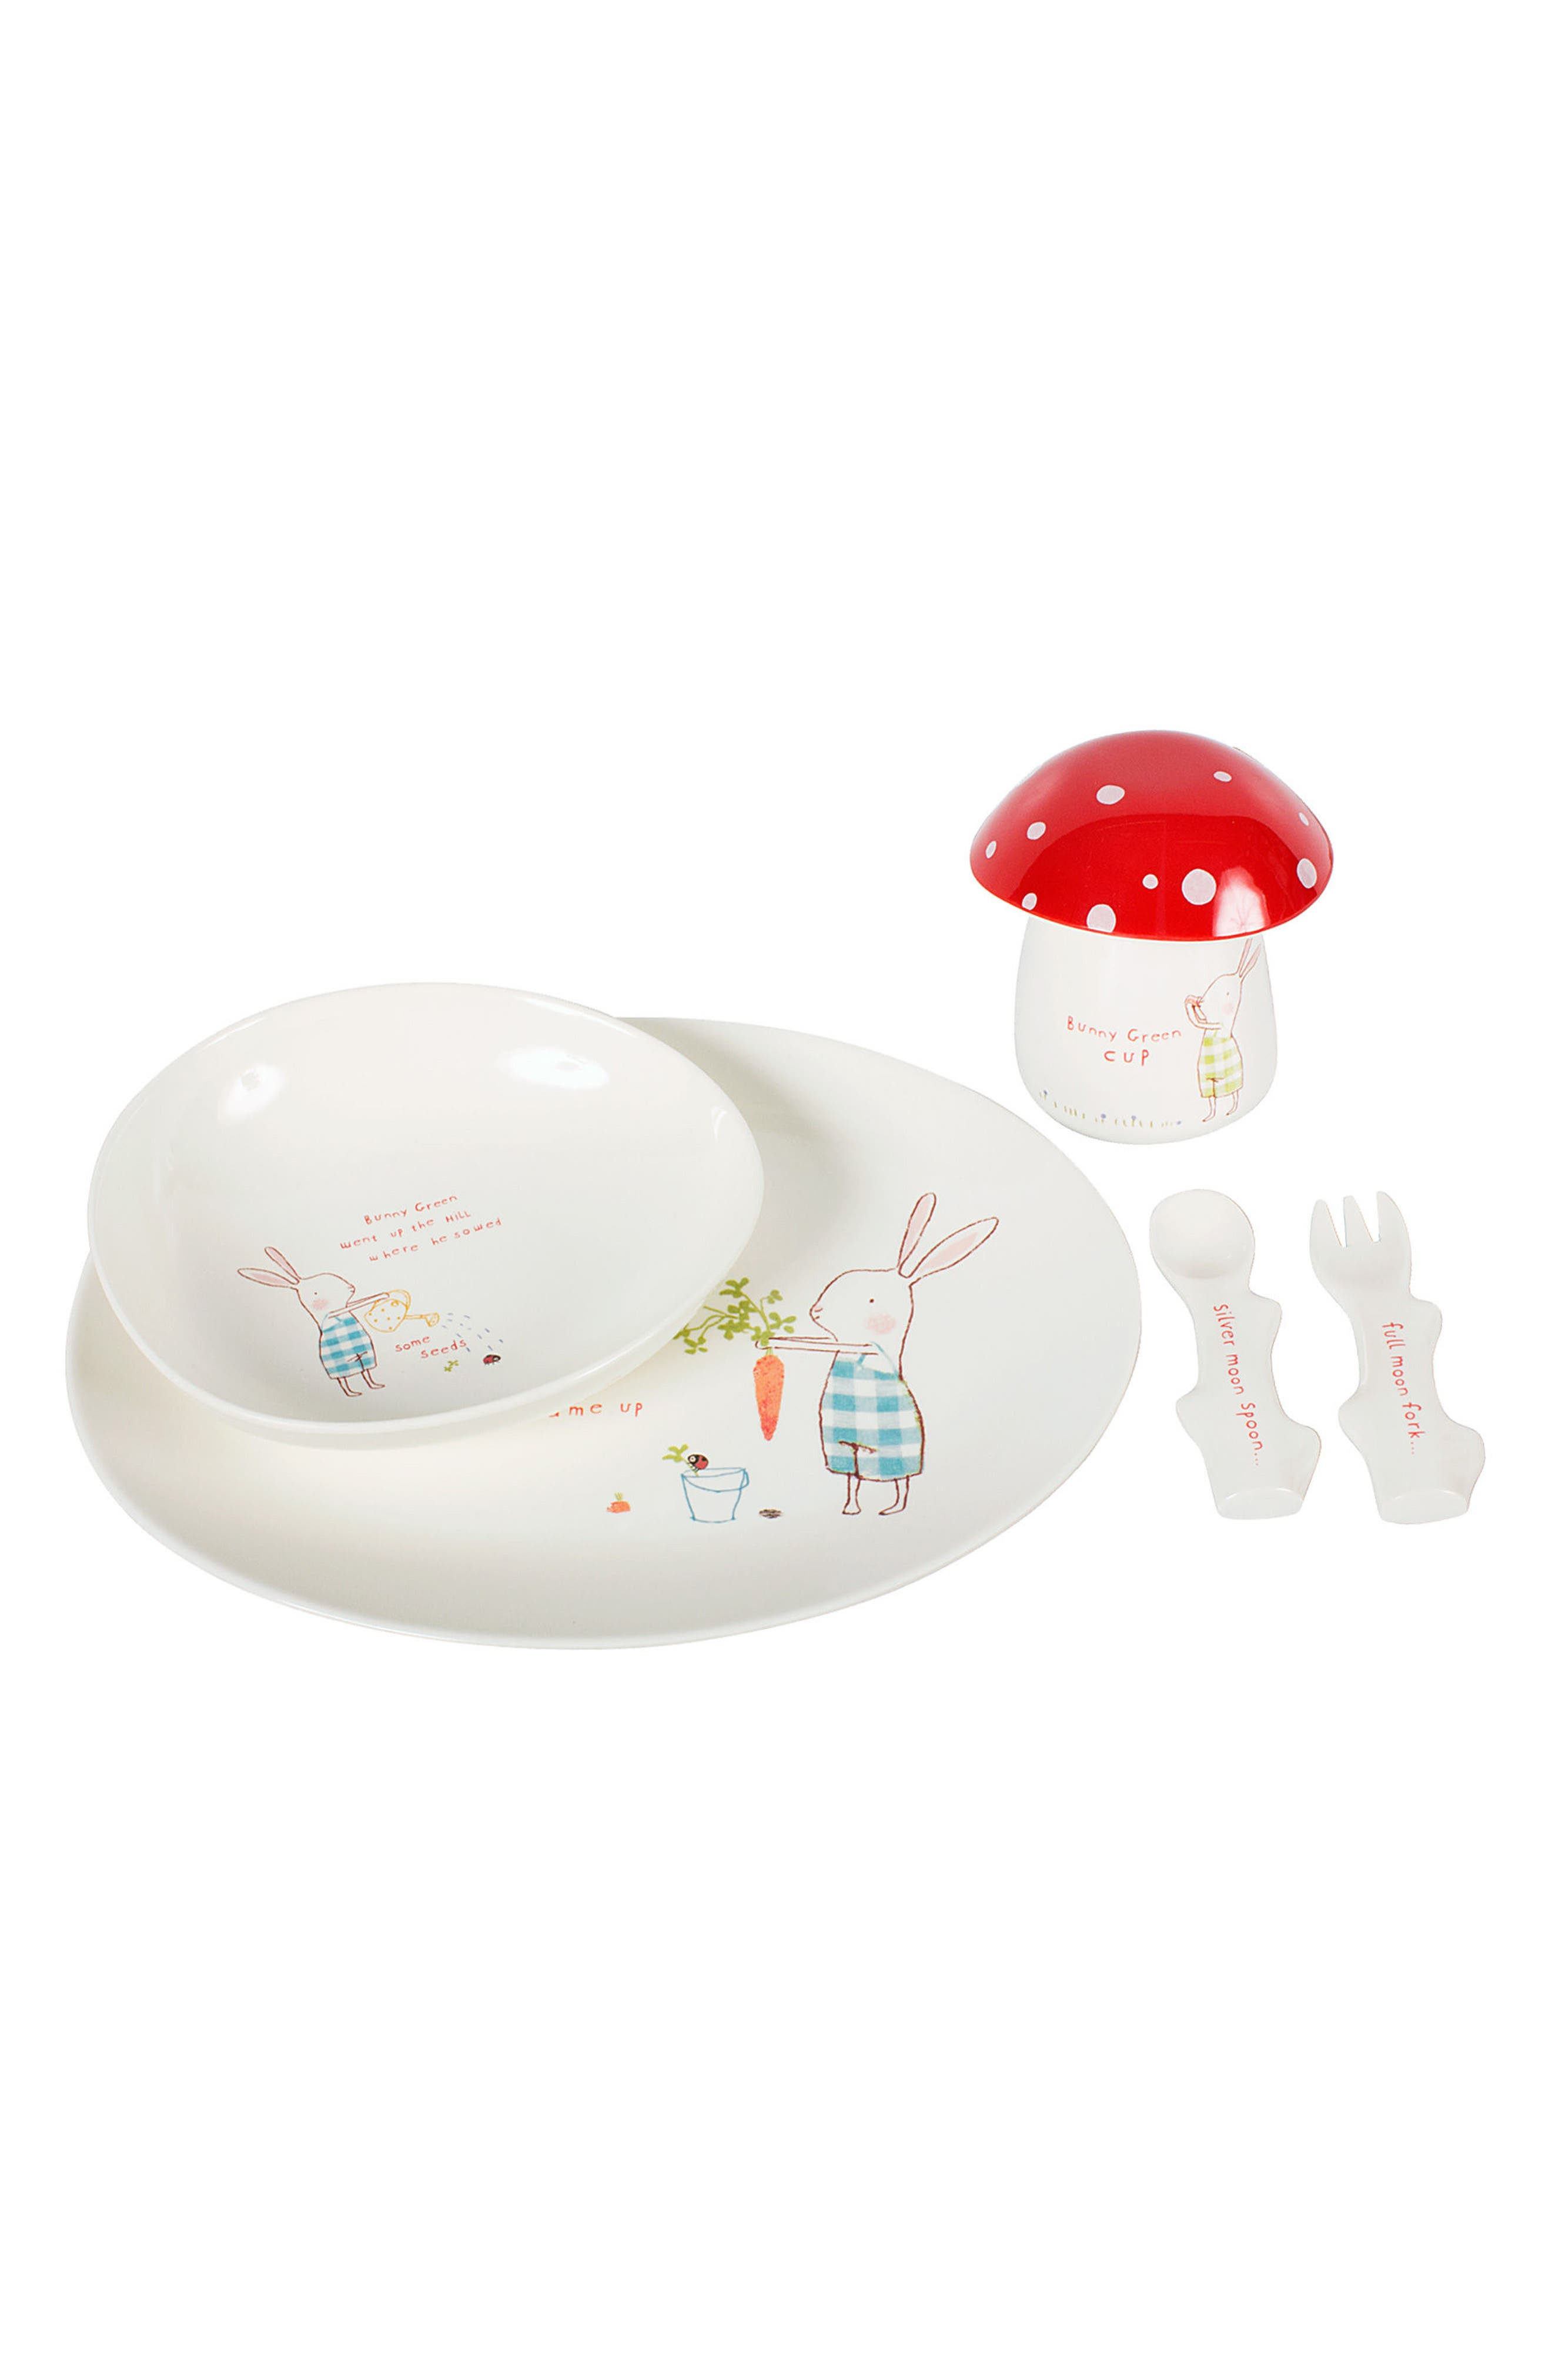 Bunny Green Print Melamine Six-Piece Dishes Set,                             Main thumbnail 1, color,                             IVORY